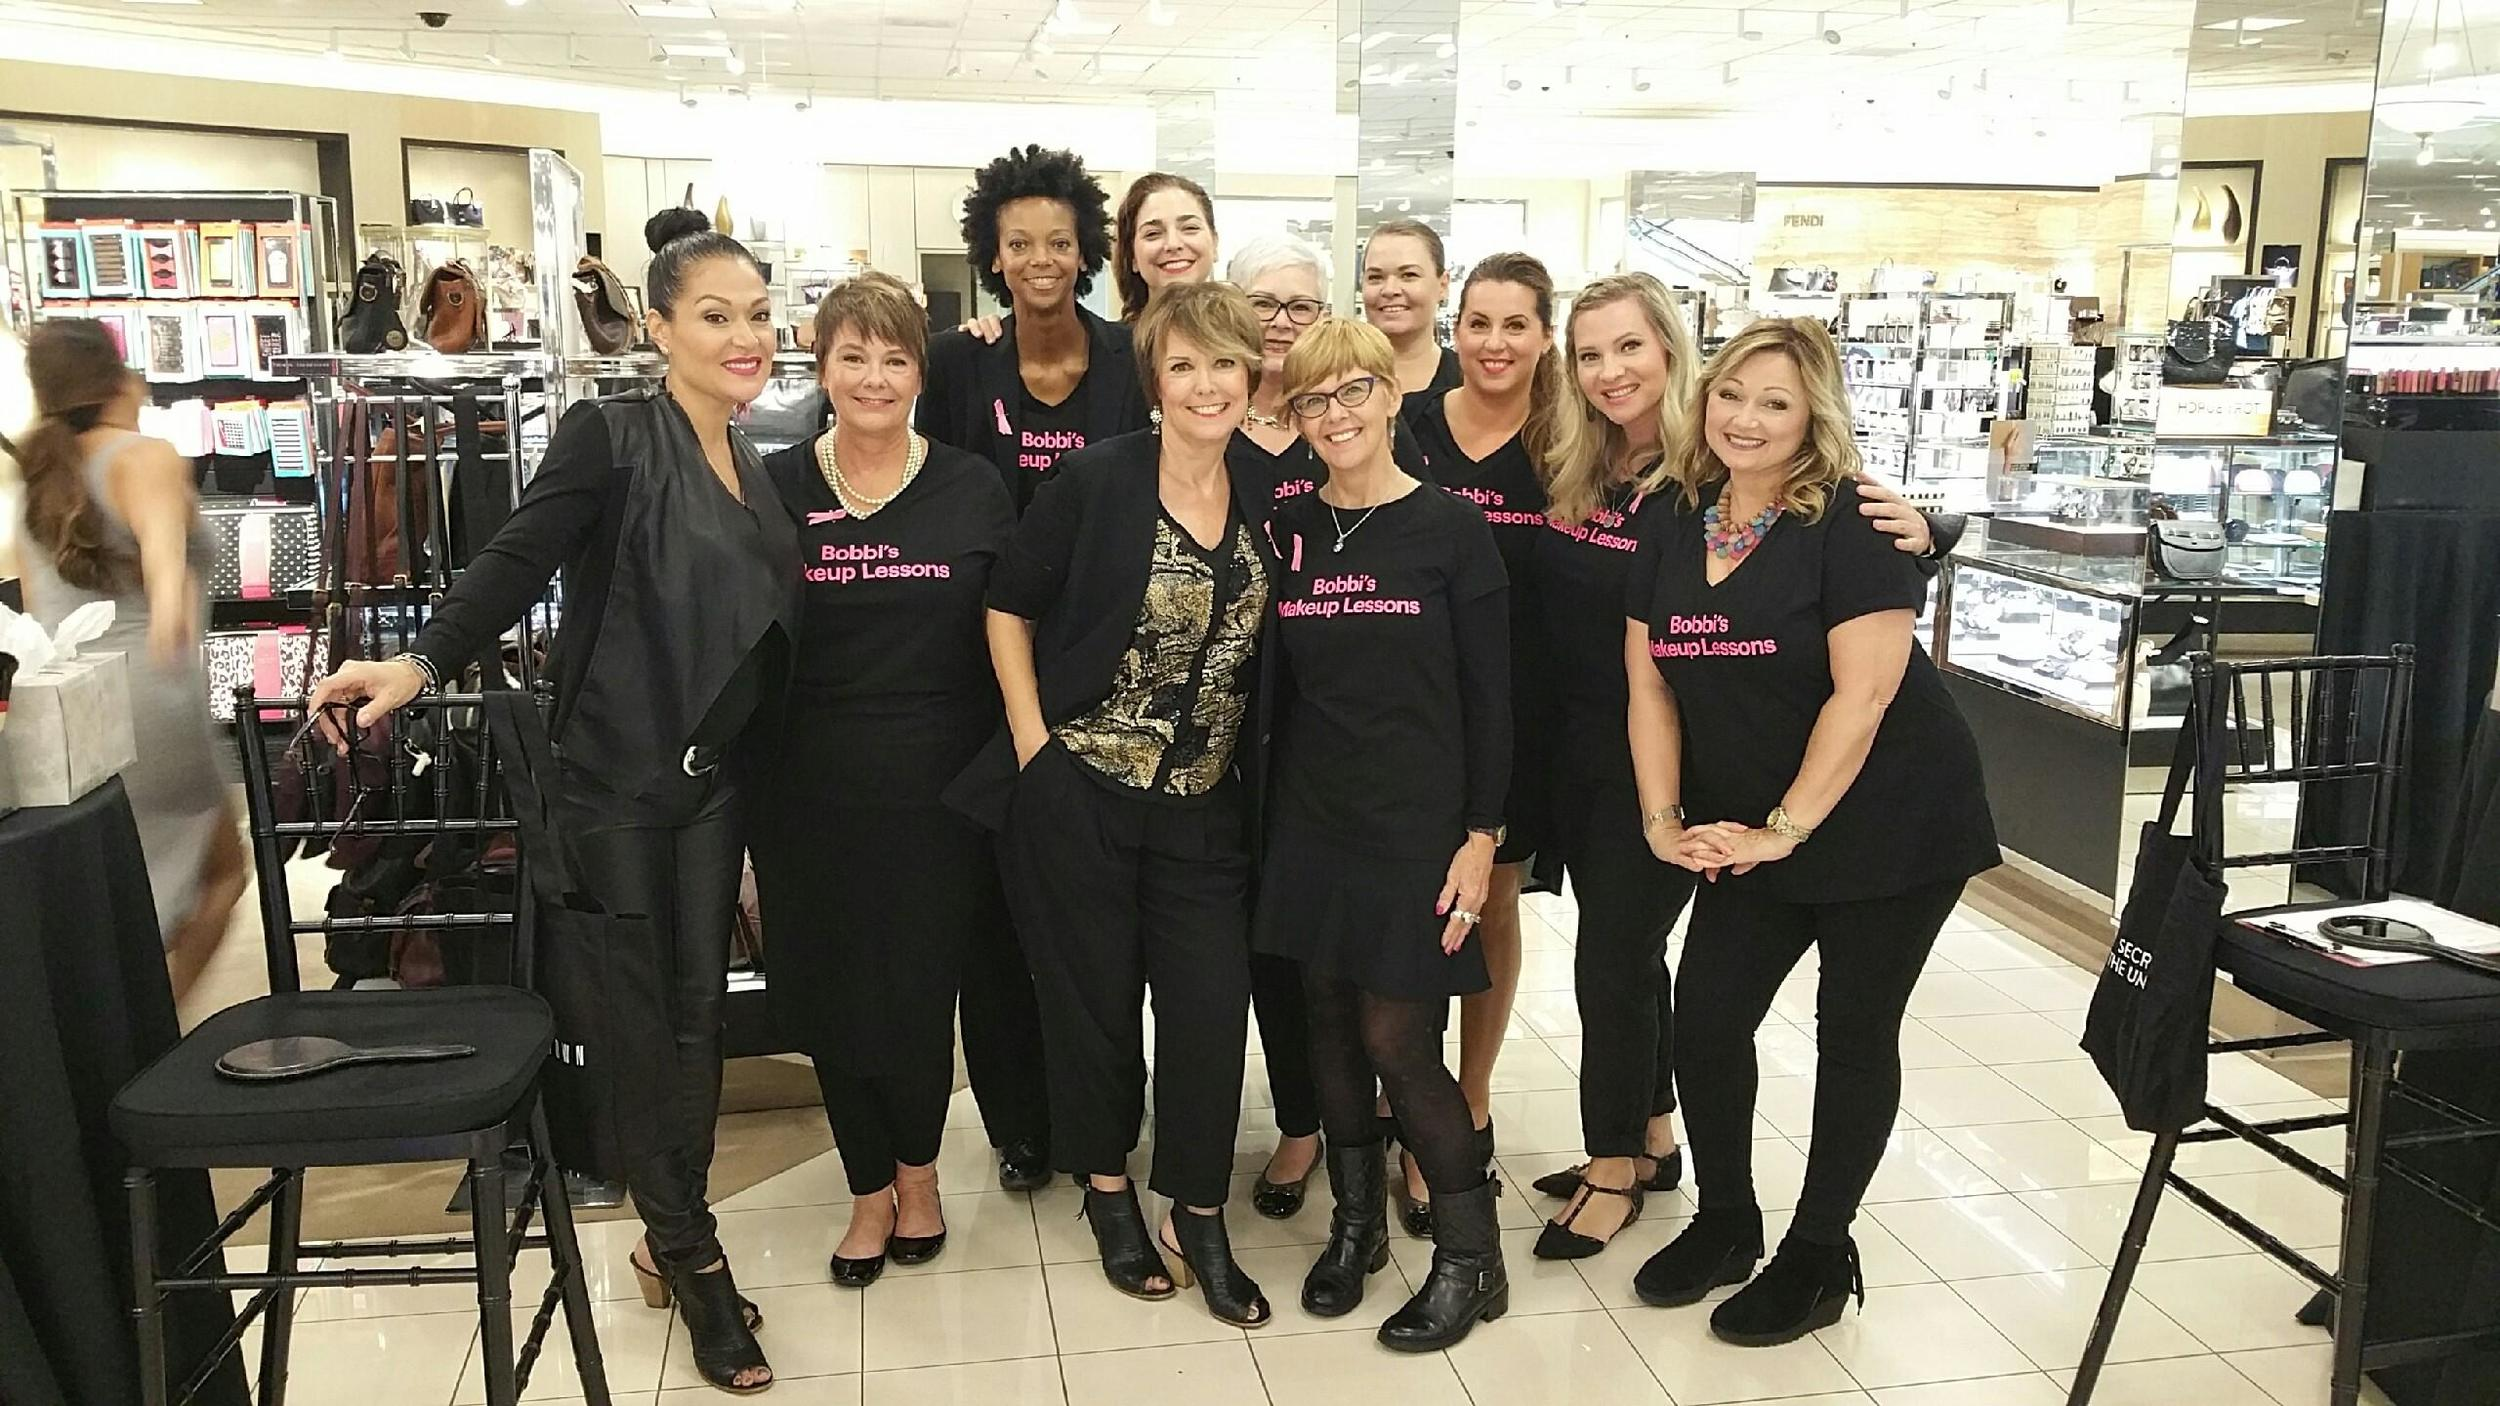 With my fellow Bobbi Brown makeup artists at a recent event. The best crew ever!